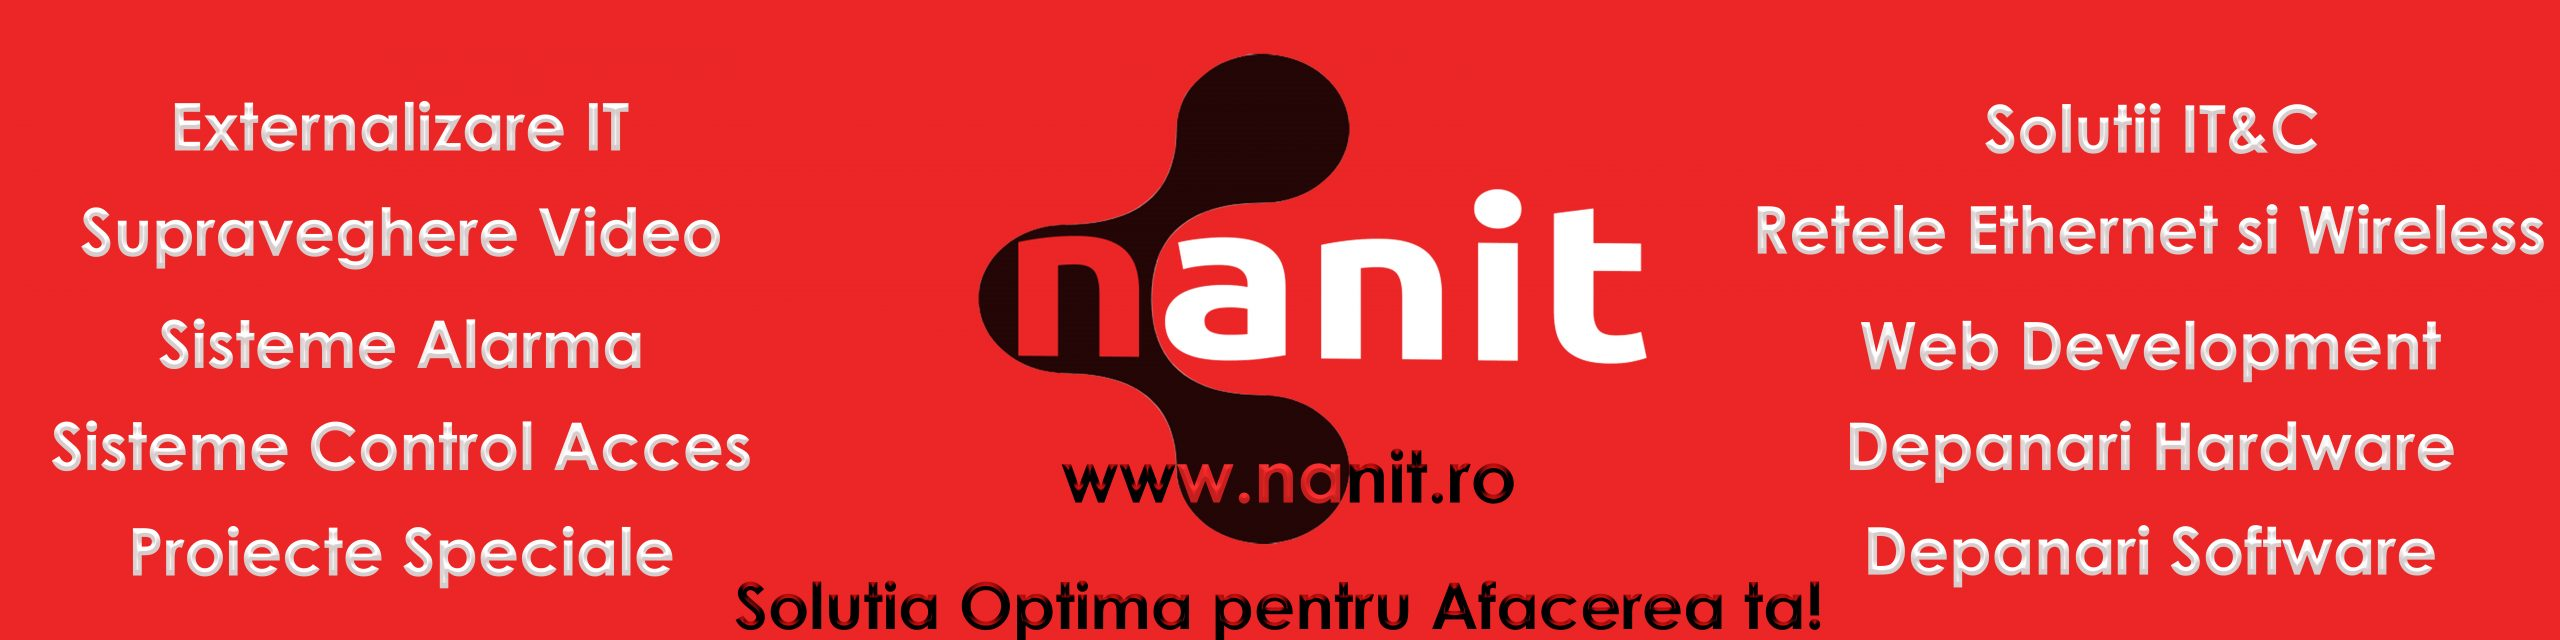 nanit.ro website ploiesti web development securitate video